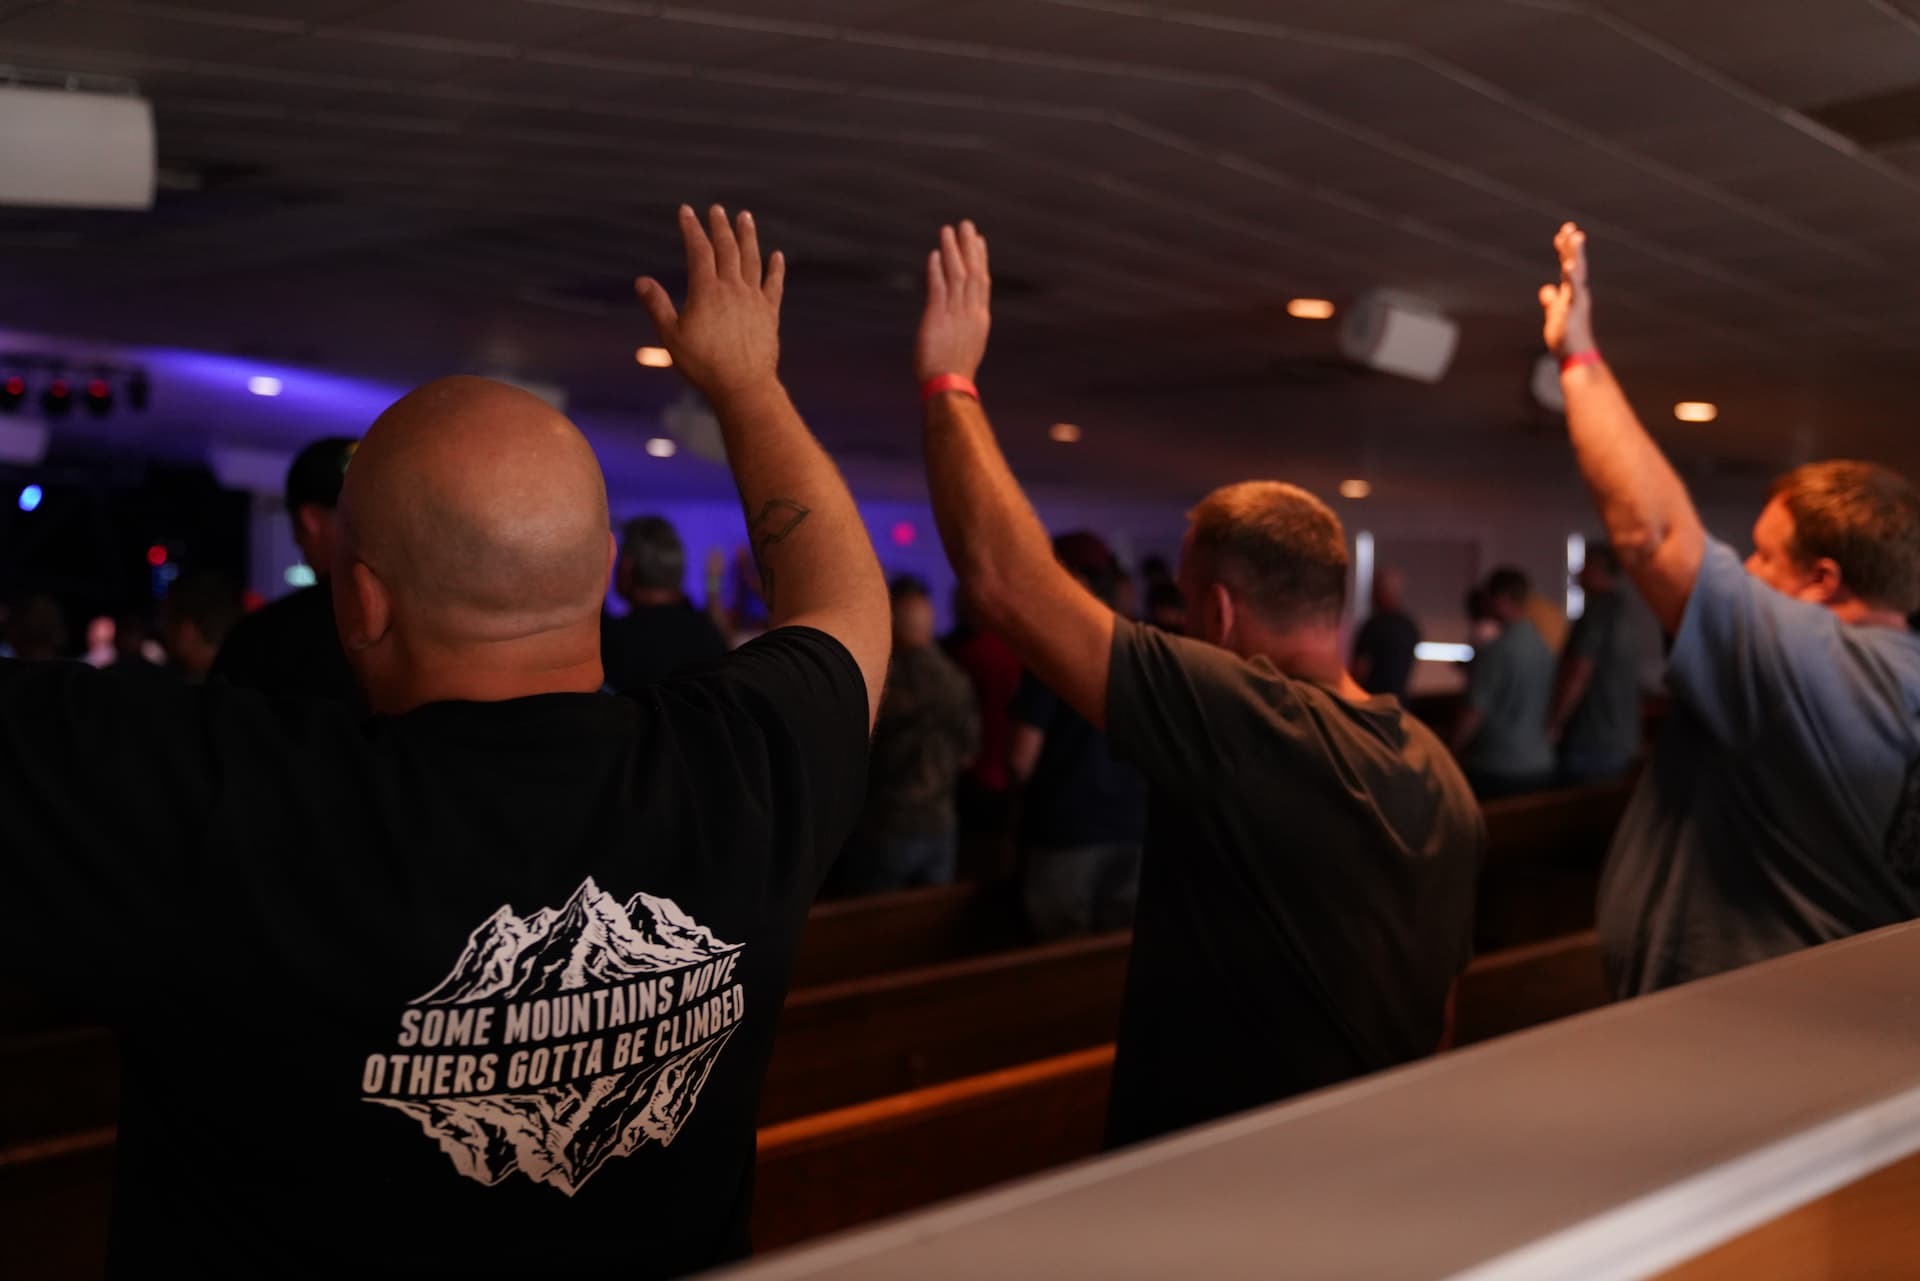 Men's Summit Worship. Man with both arms lifted in worship. Band on stage in blurred background